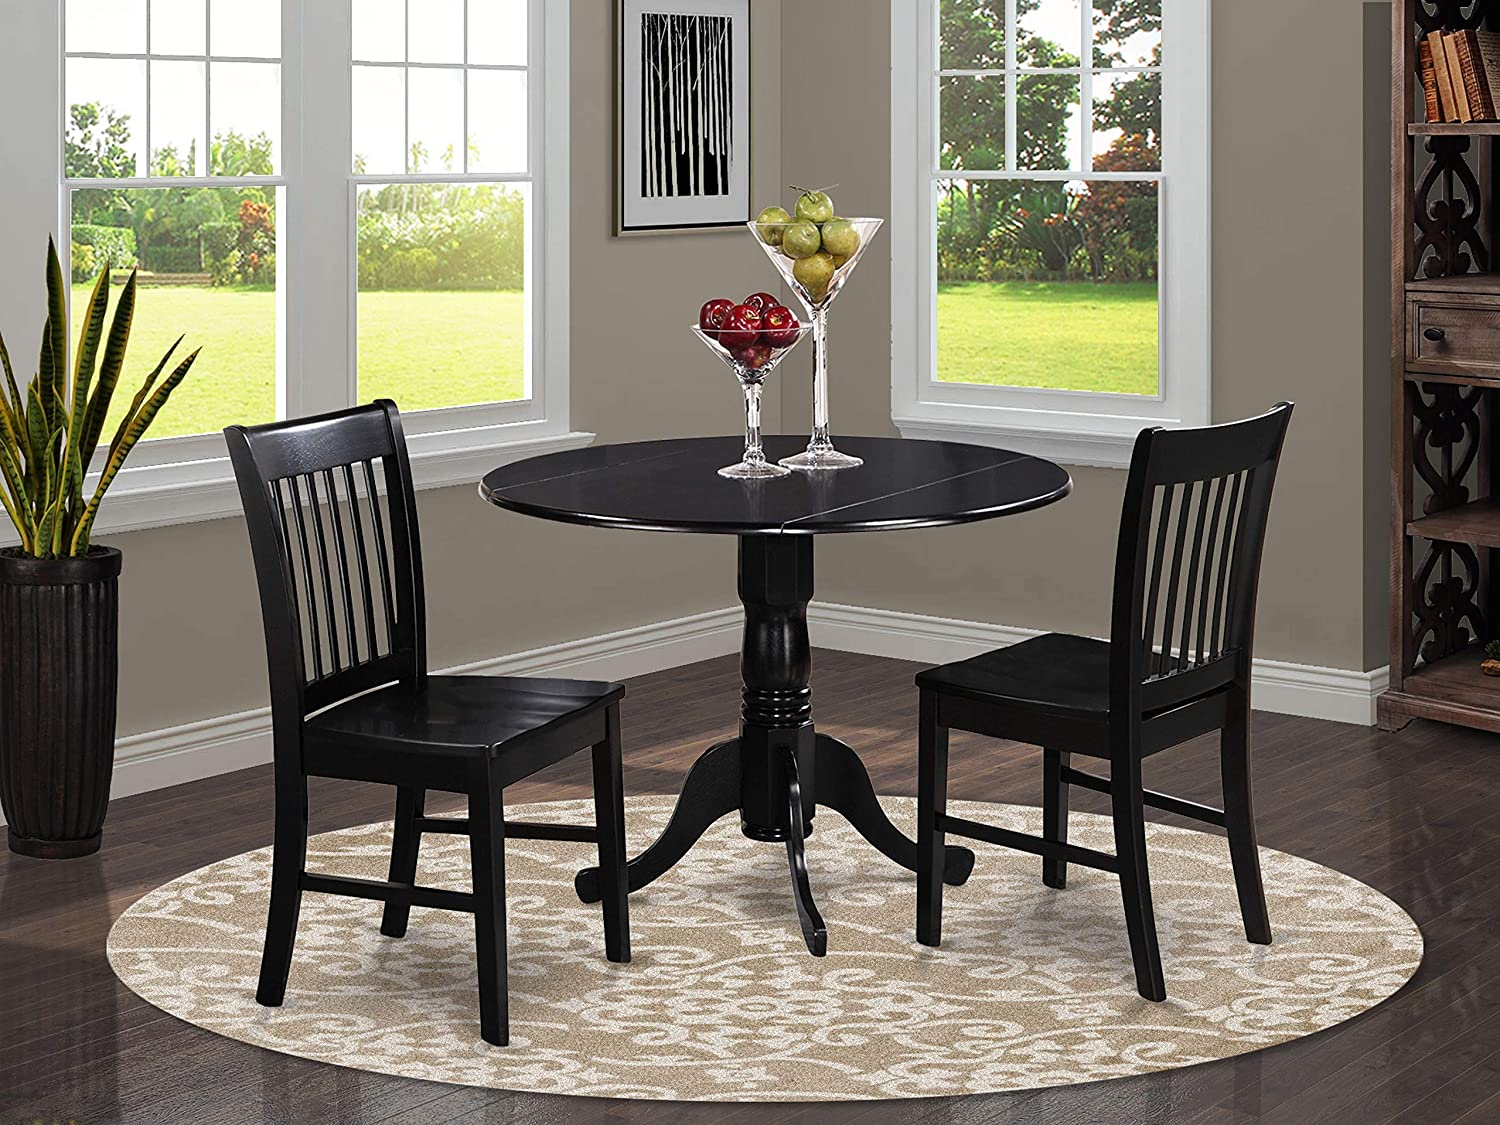 Amazon Com 3 Pc Small Kitchen Table And Chairs Set Kitchen Table Plus 2 Dinette Chairs Table Chair Sets